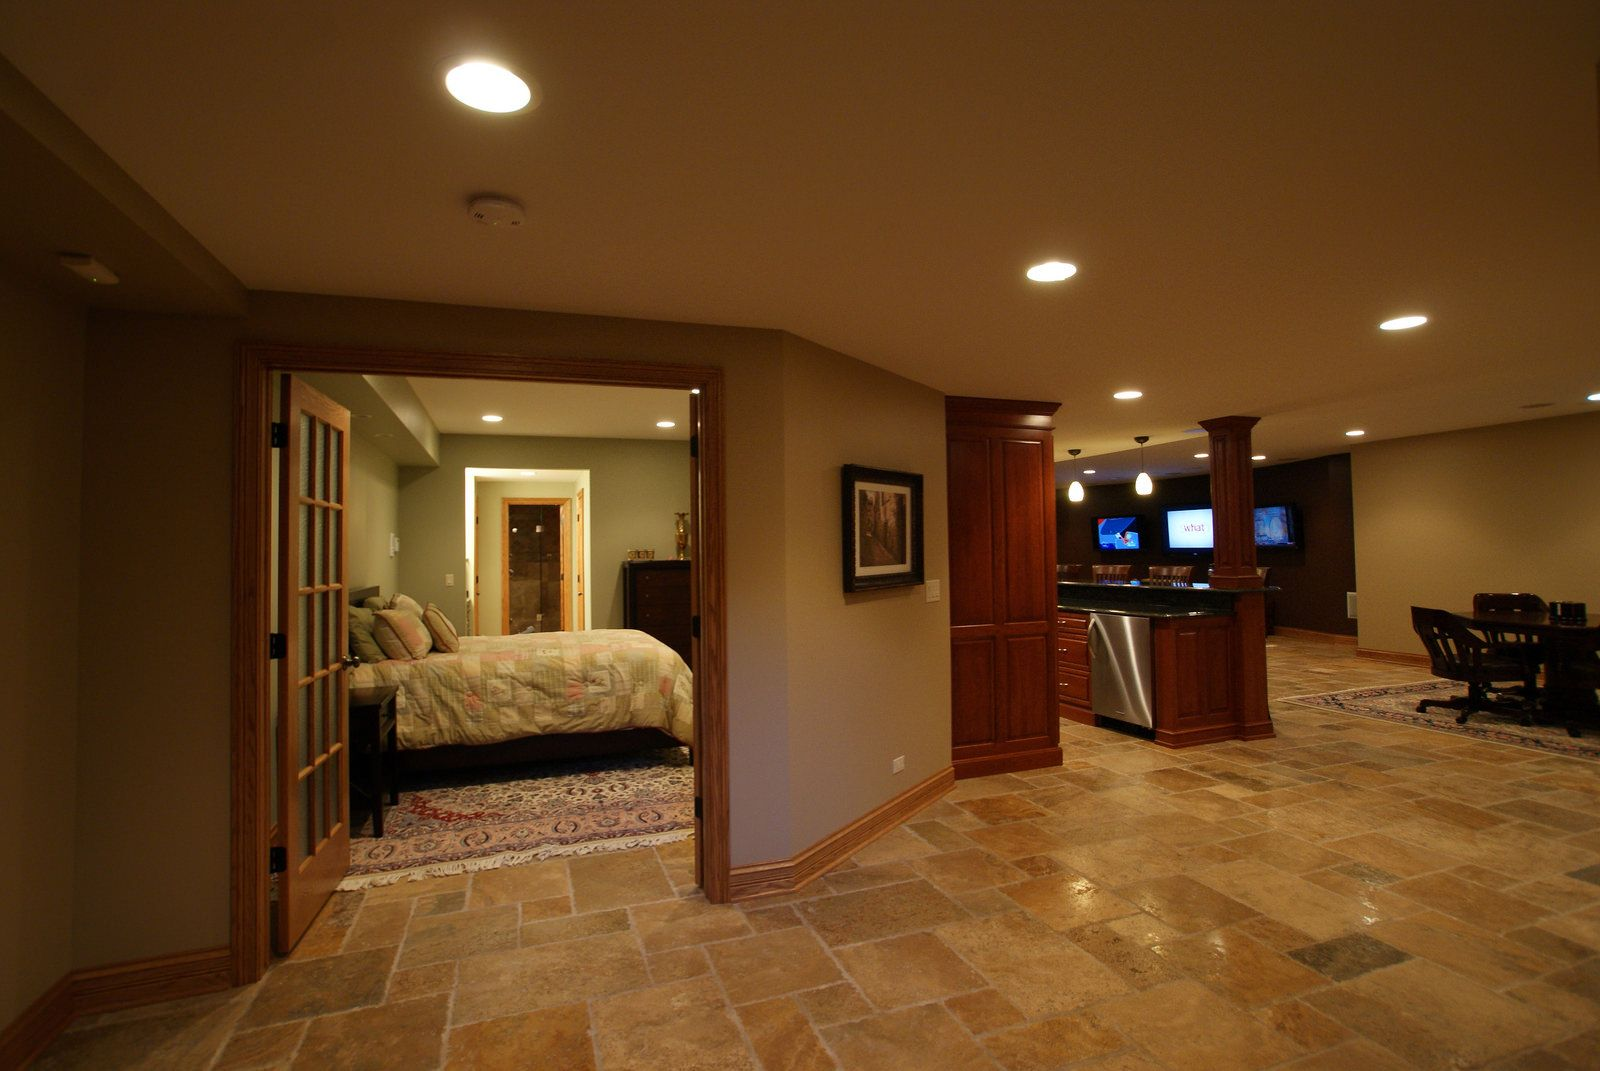 Renovated Basements Amazing Marietta Basement Remodels Room Additions Georgia Also